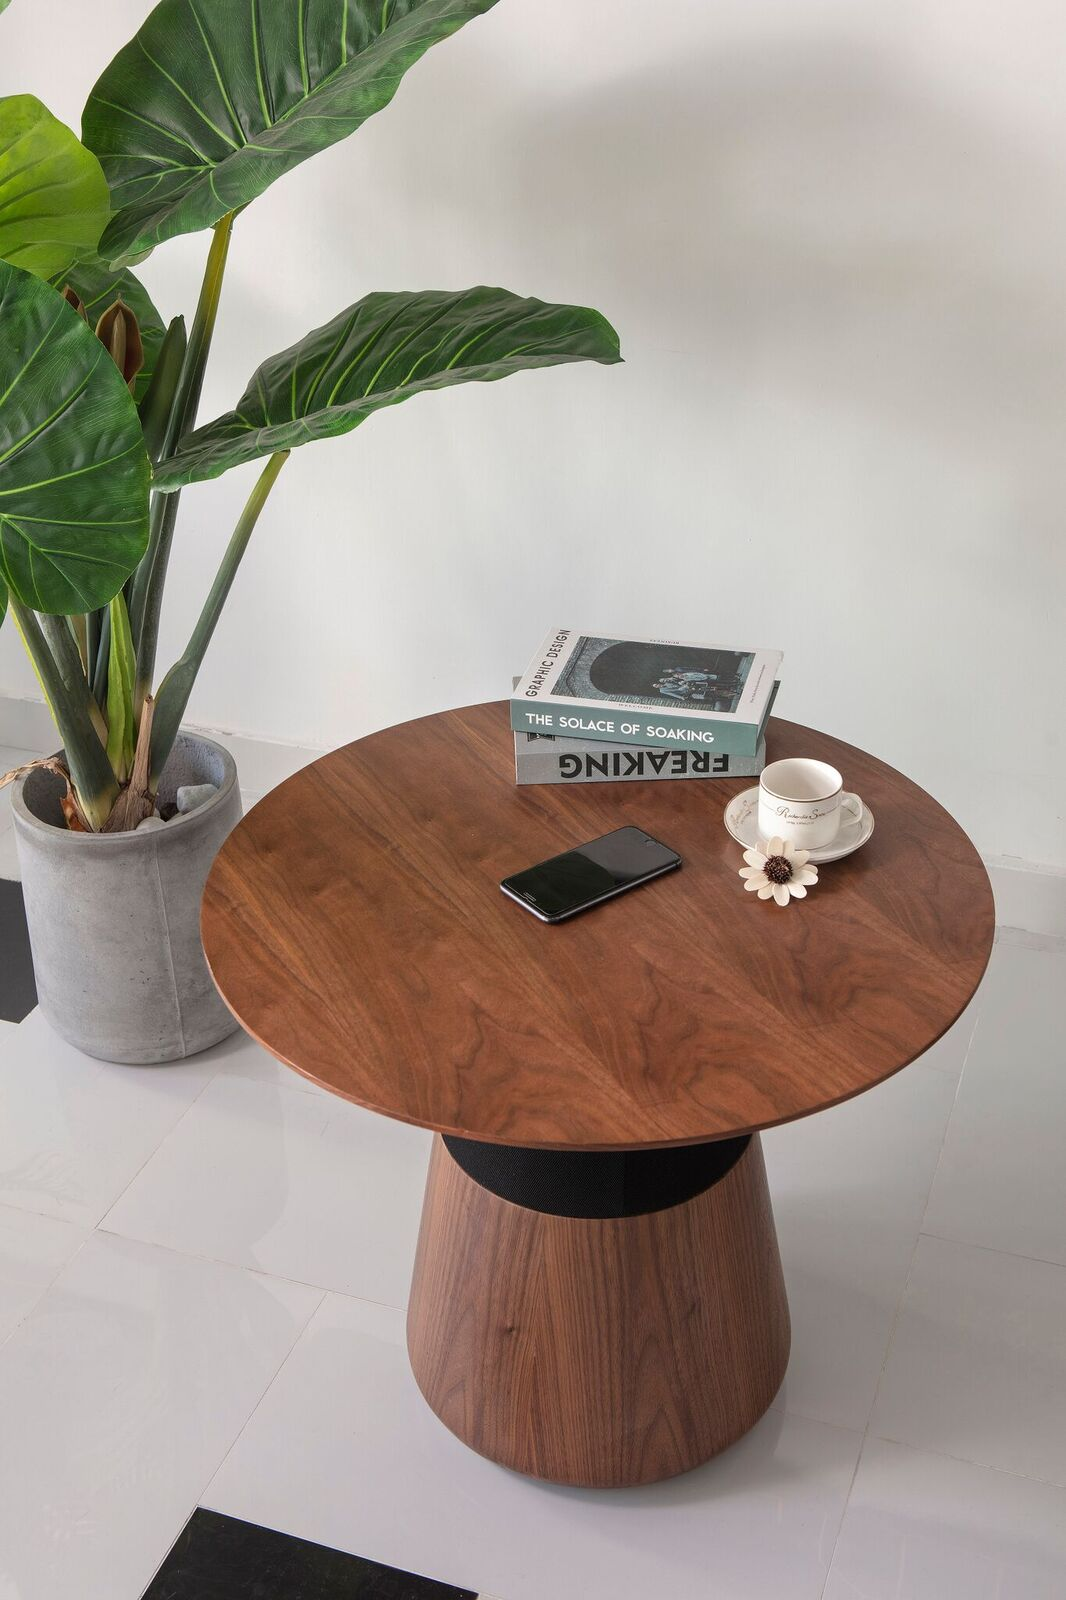 37 Degree Smart Home table